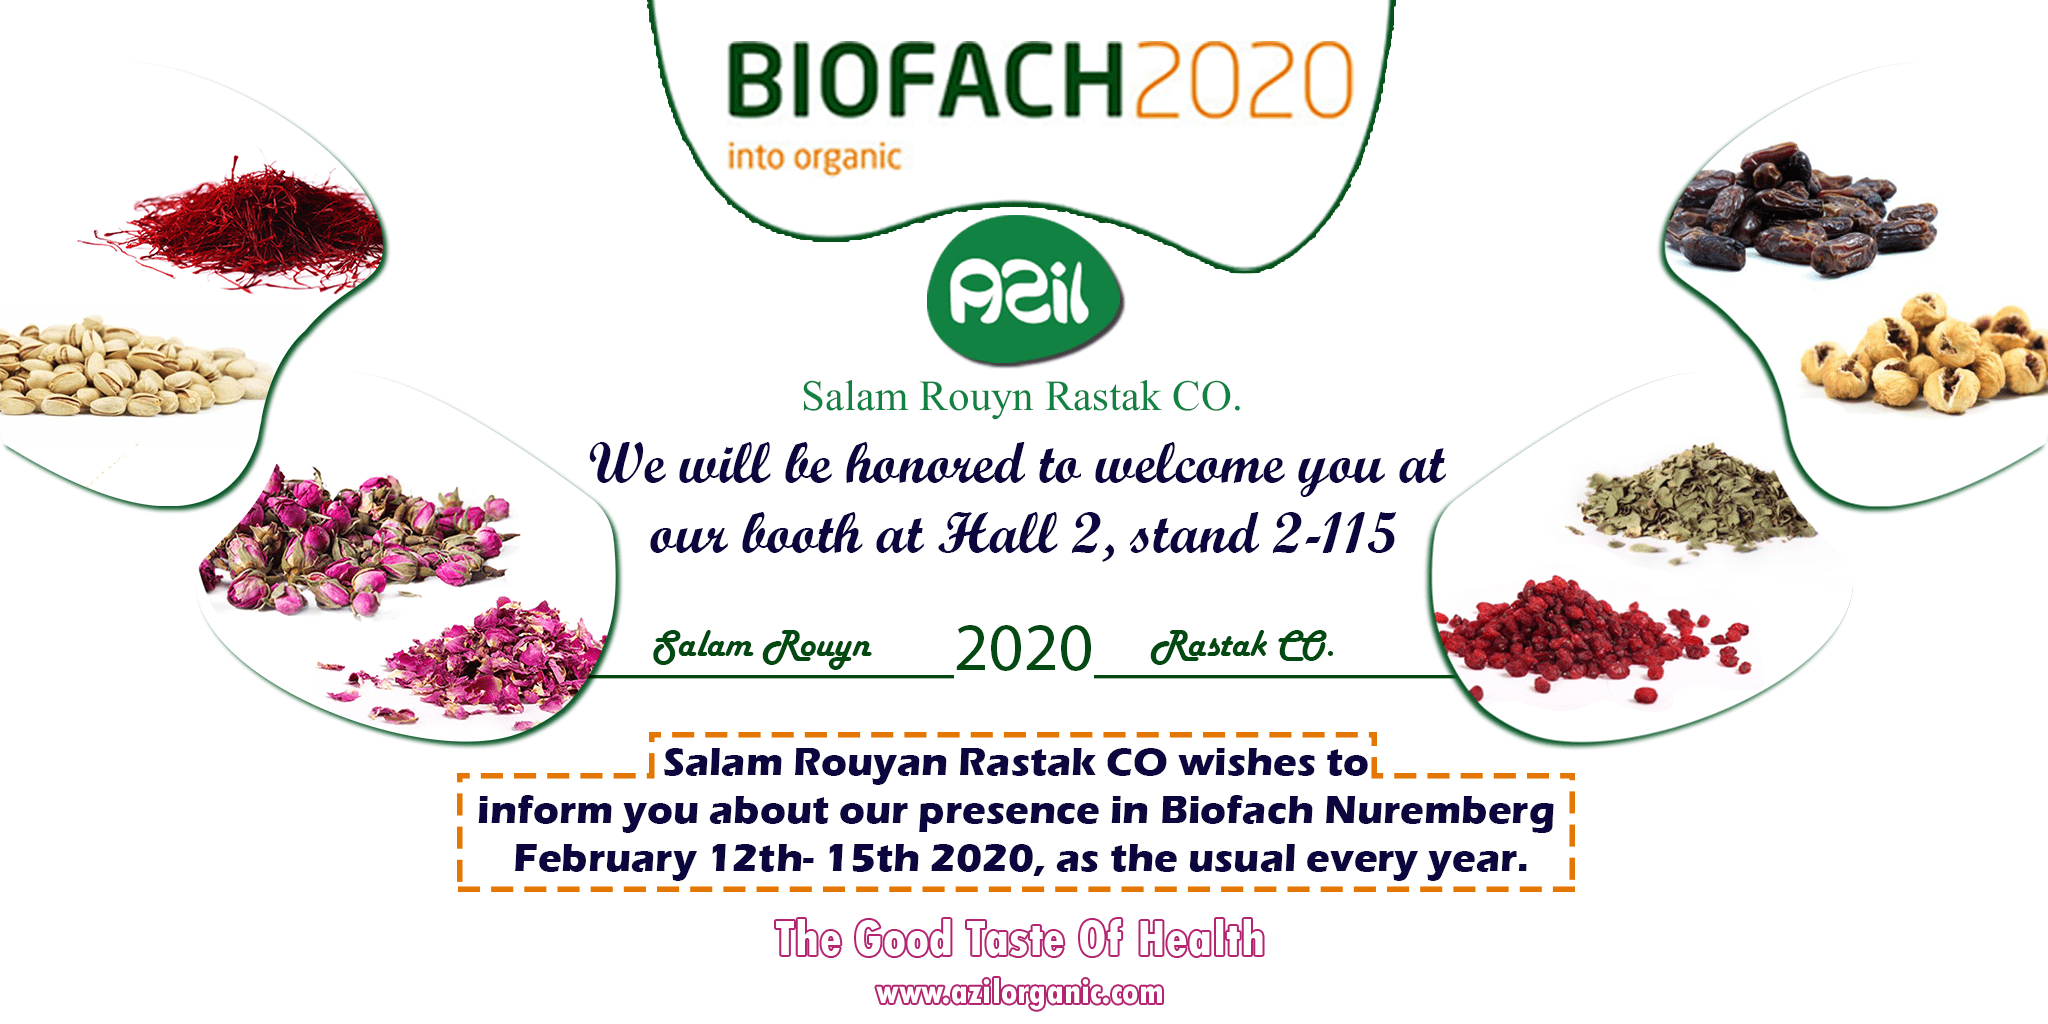 Presence Salam Rouyan Rastak CO. in Biofach 2020 -Germany